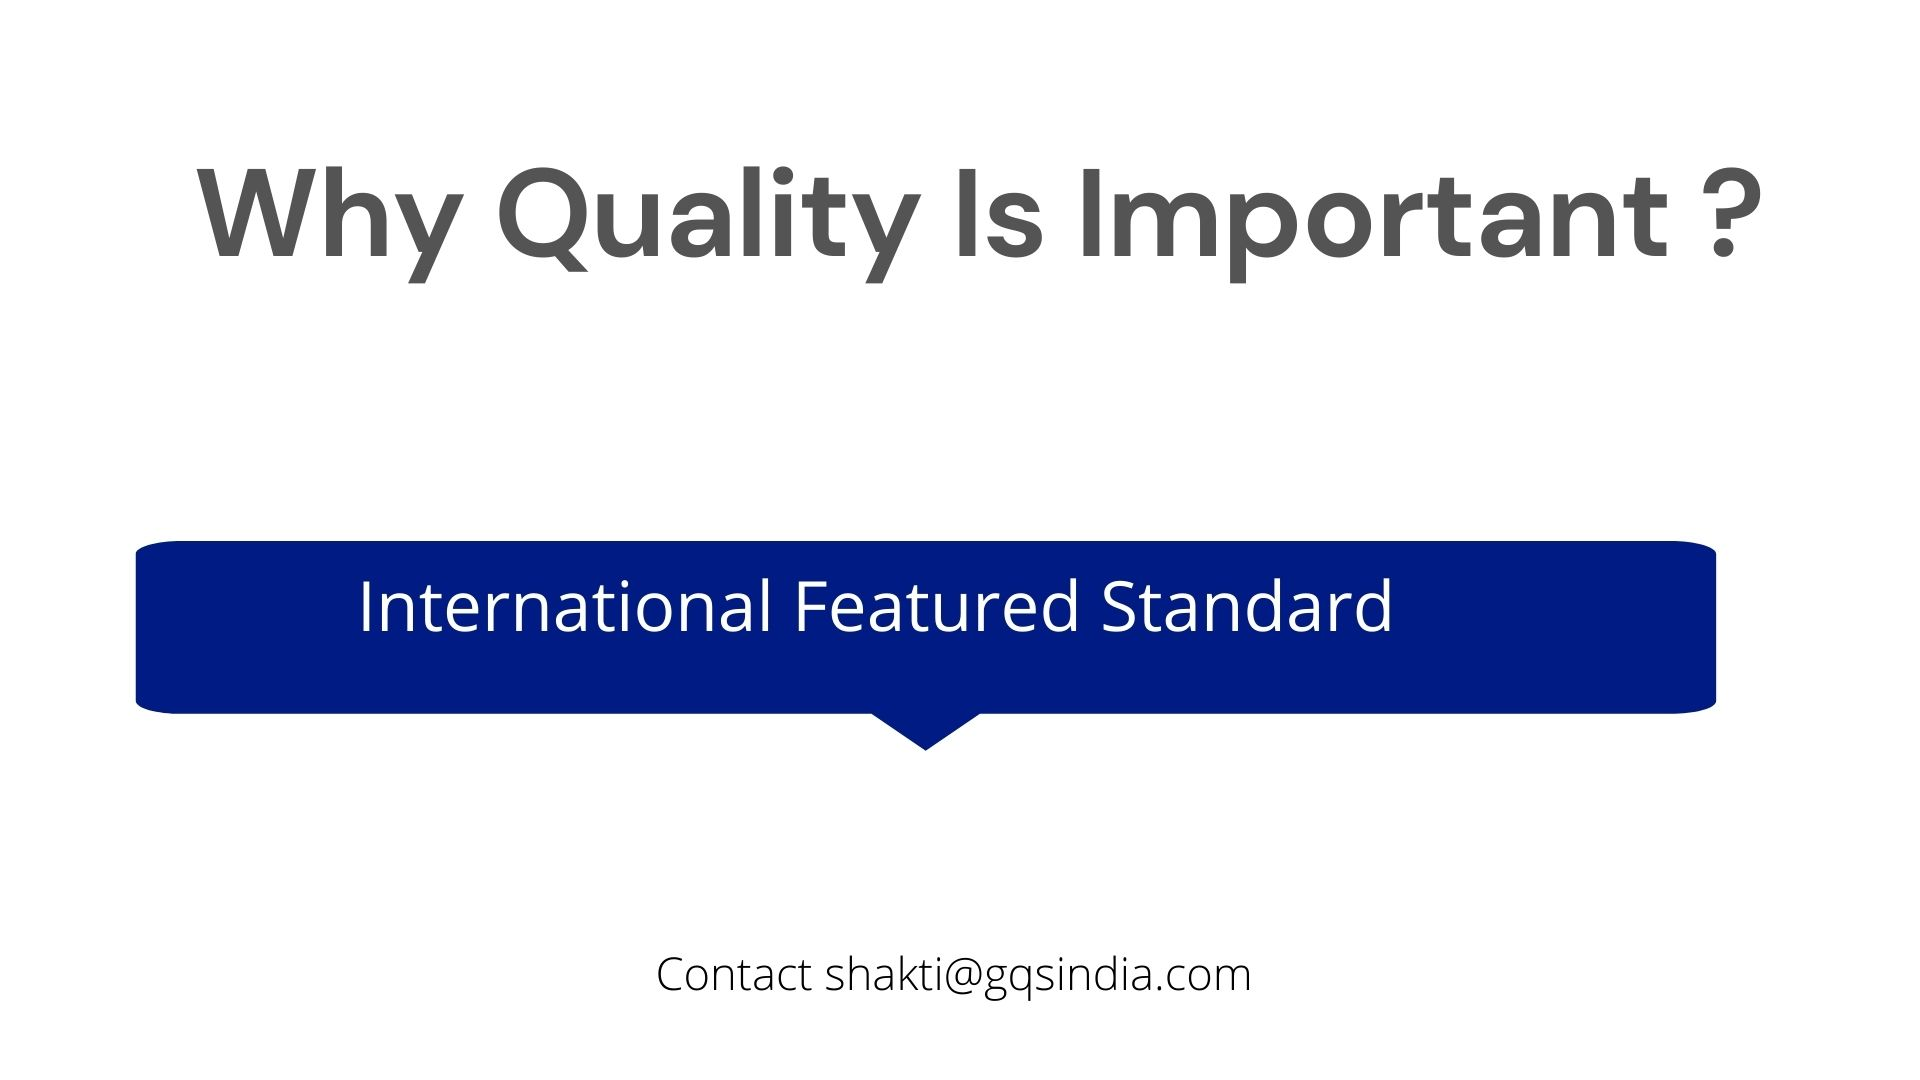 WHY IS IT IMPORTANT TO CERTIFY FOOD AND ITS QUALITY